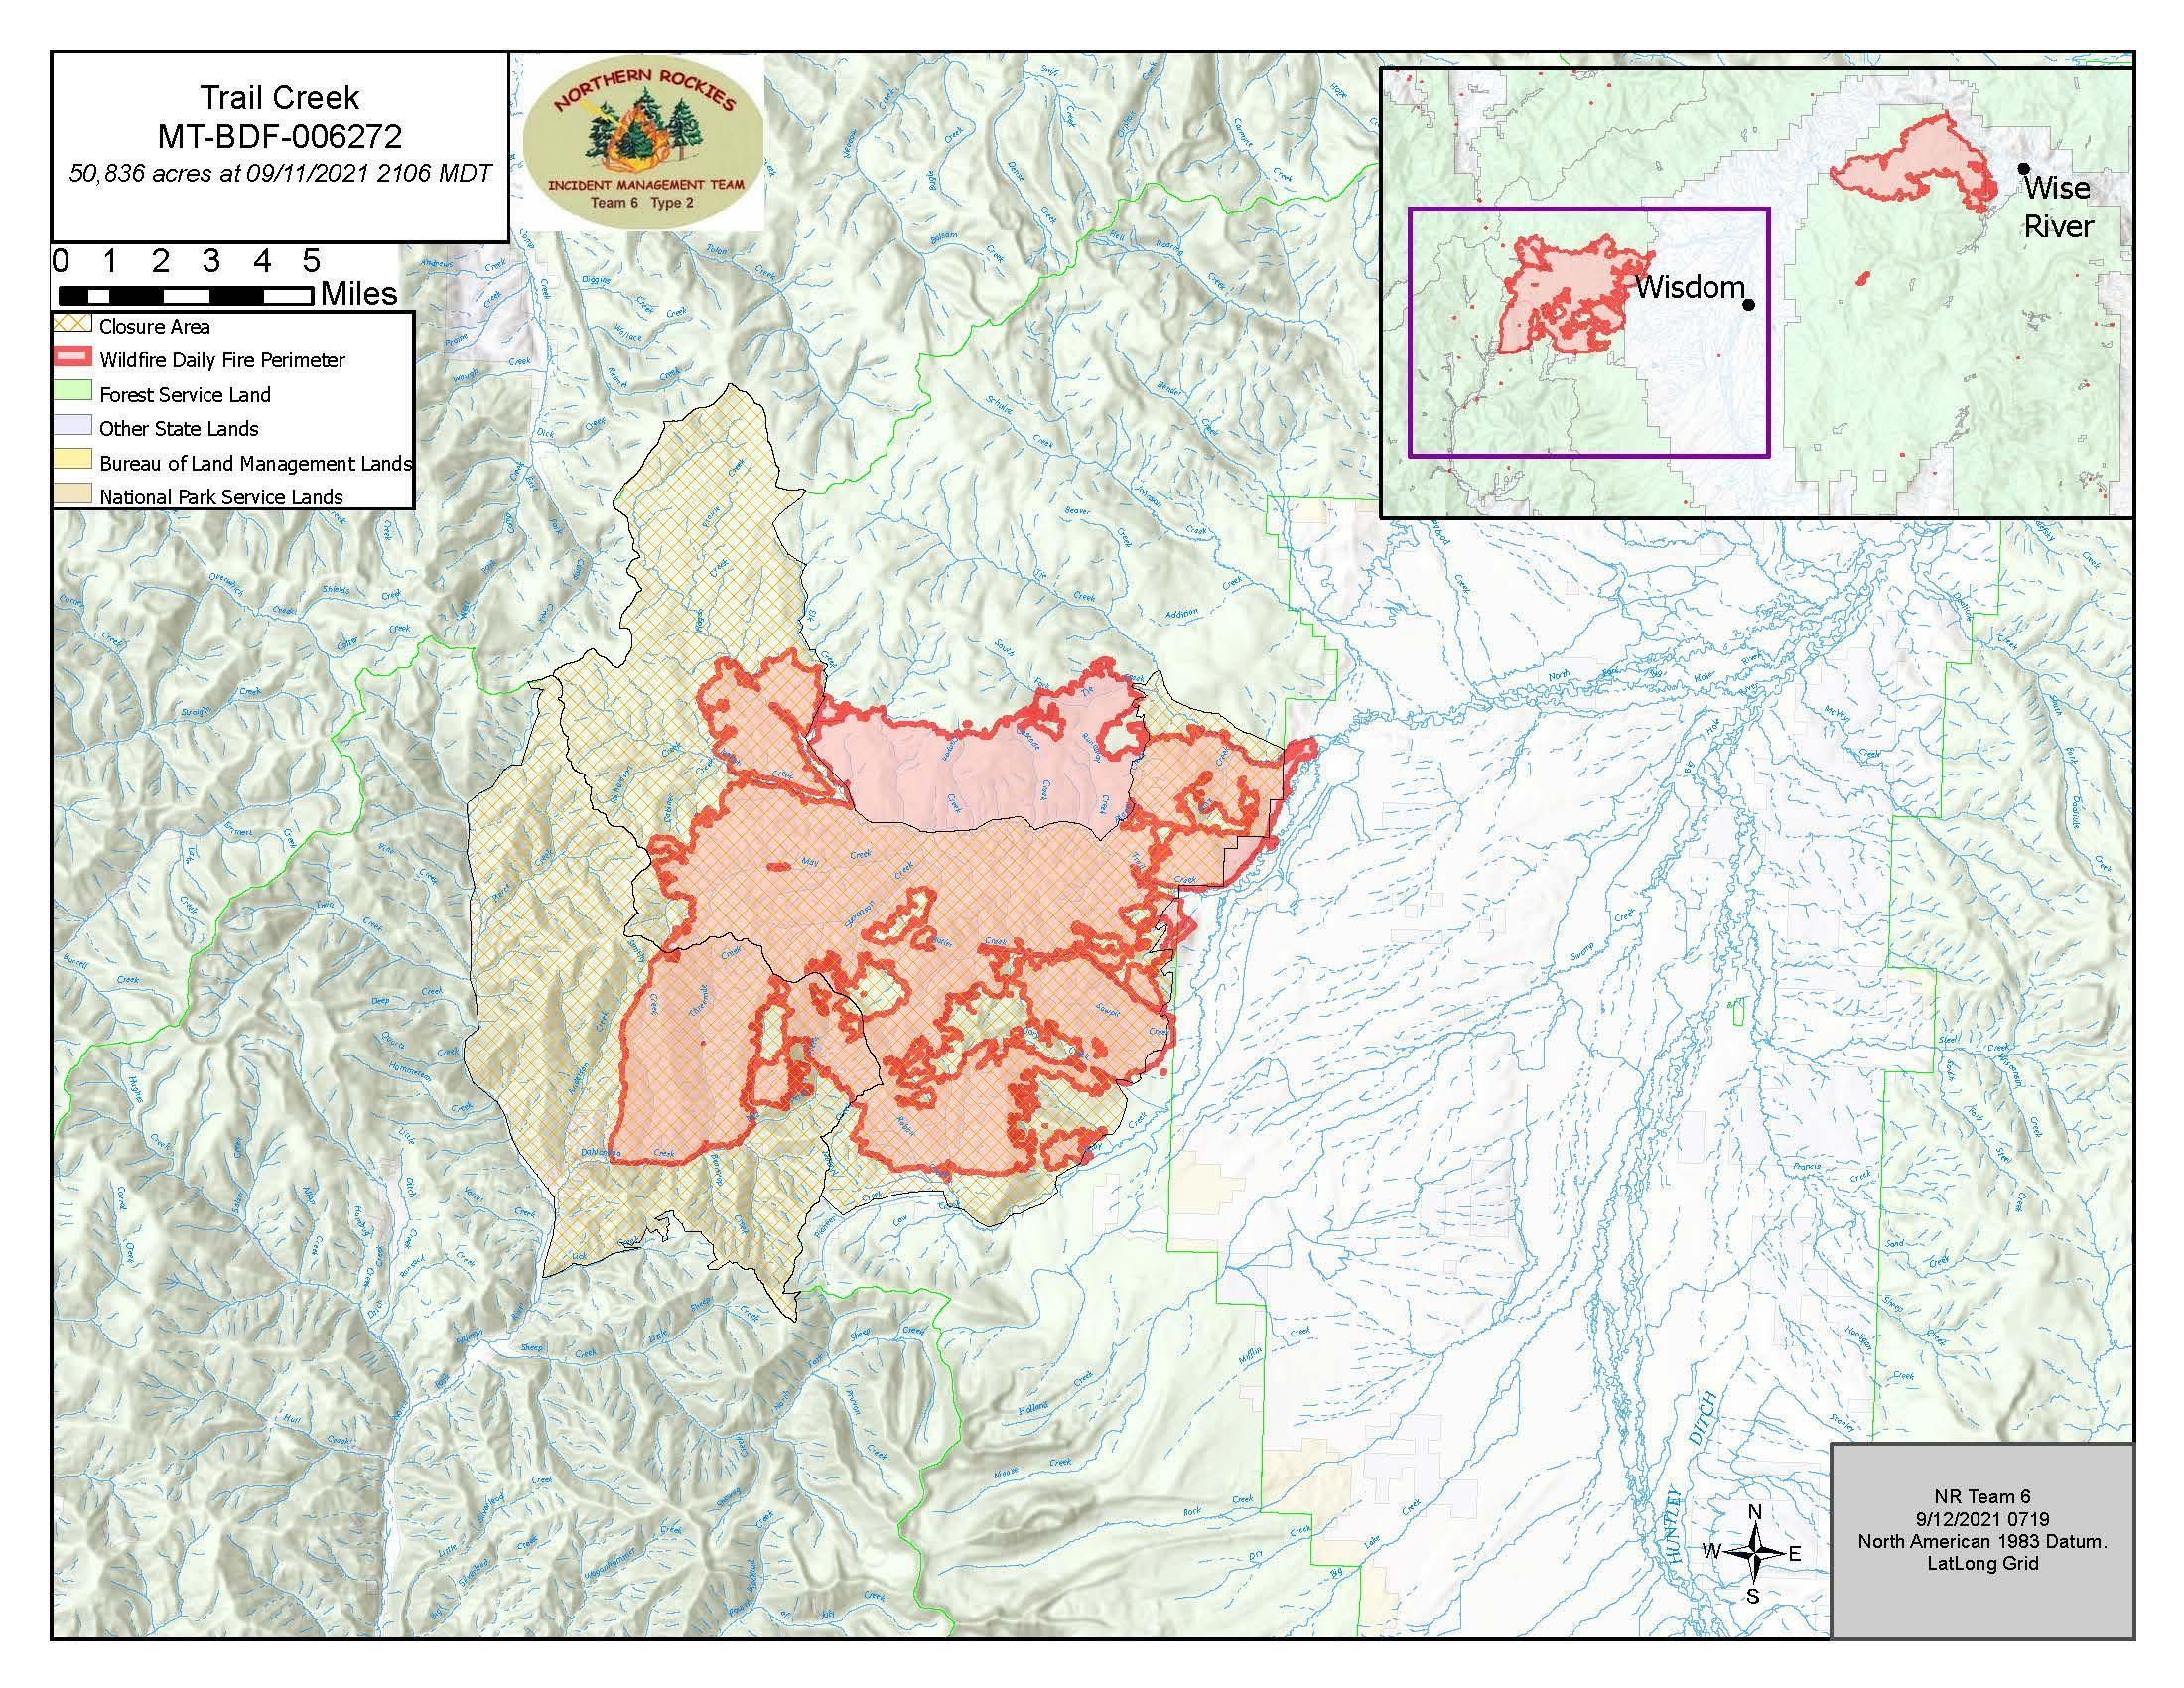 Topo map showing fire are and closure area